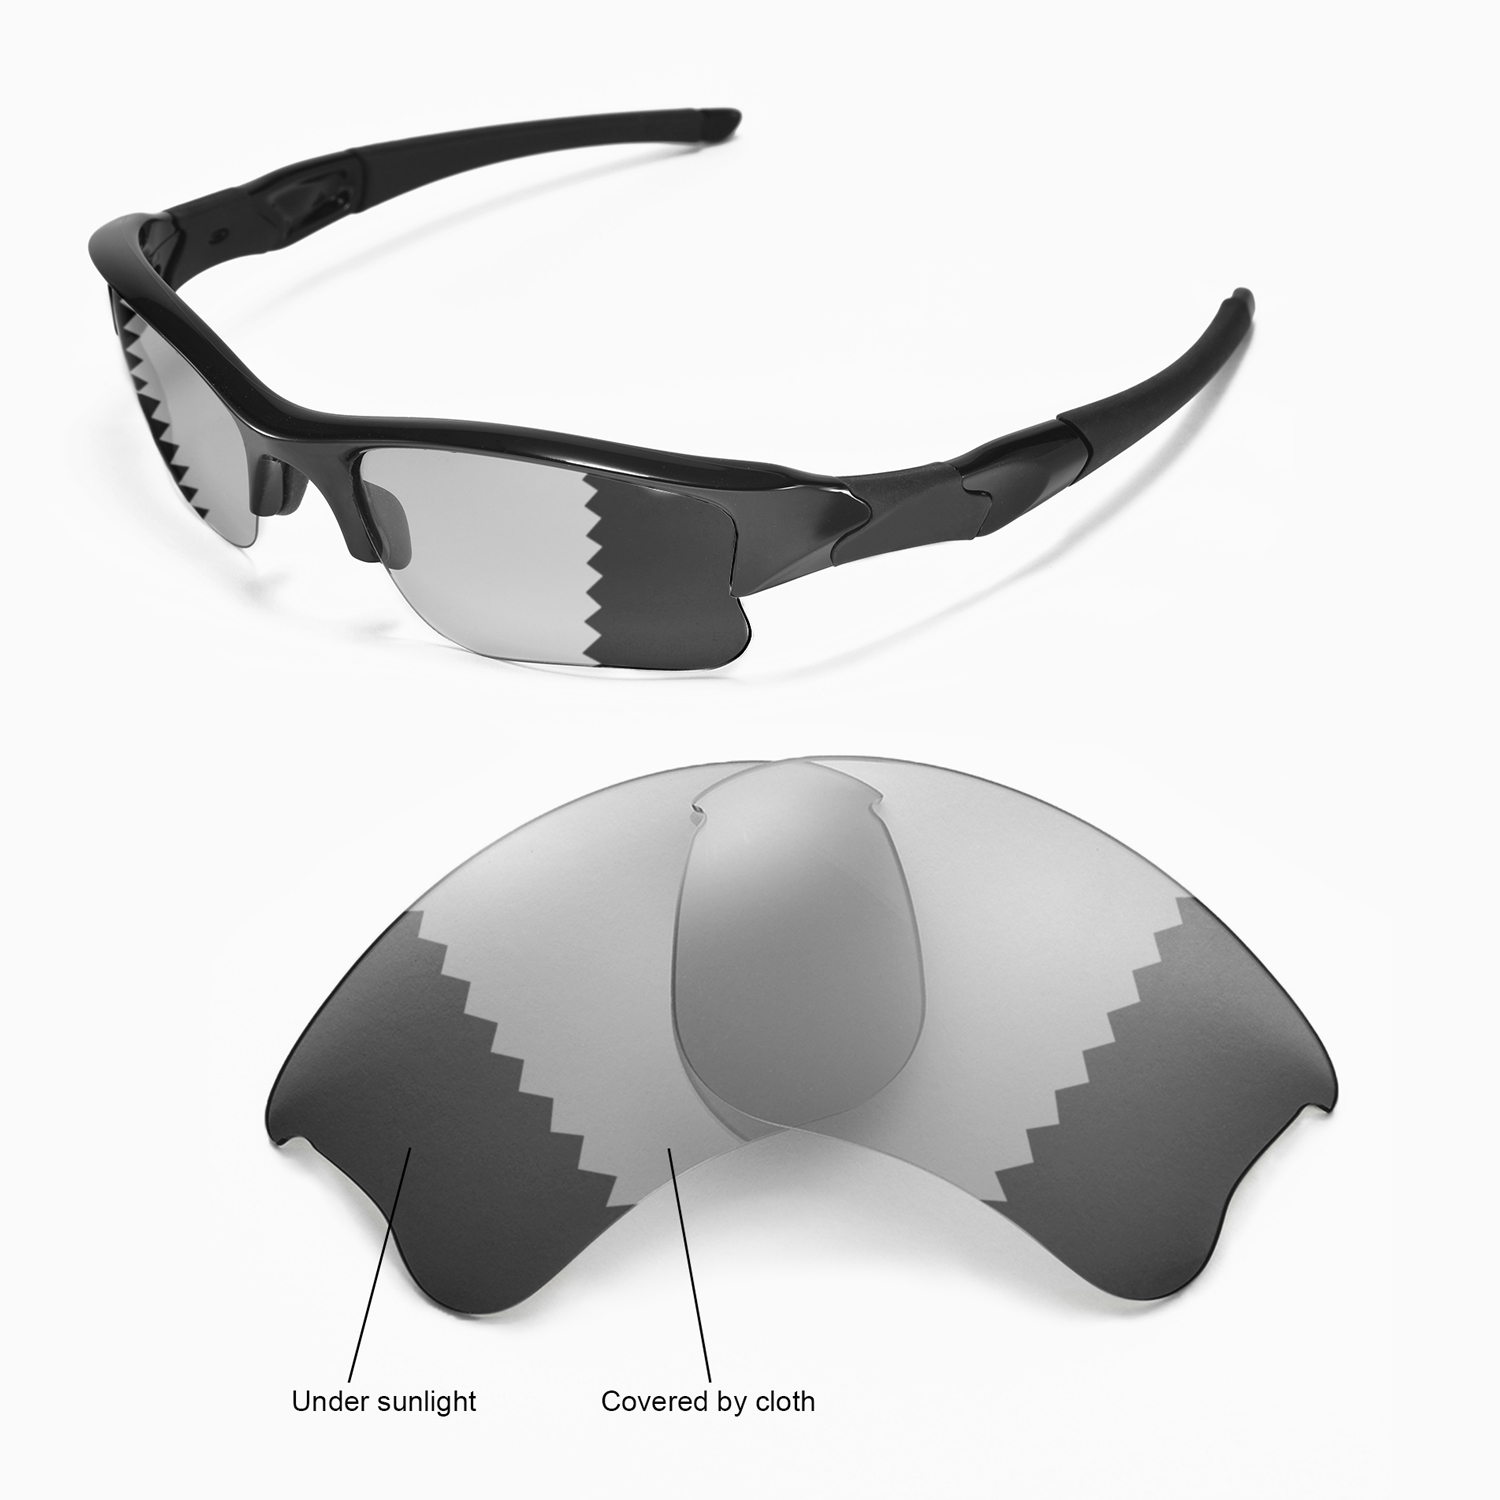 ec287536619d5 Details about New Walleva Polarized Transition Photochromic Lenses For  Oakley Flak Jacket XLJ